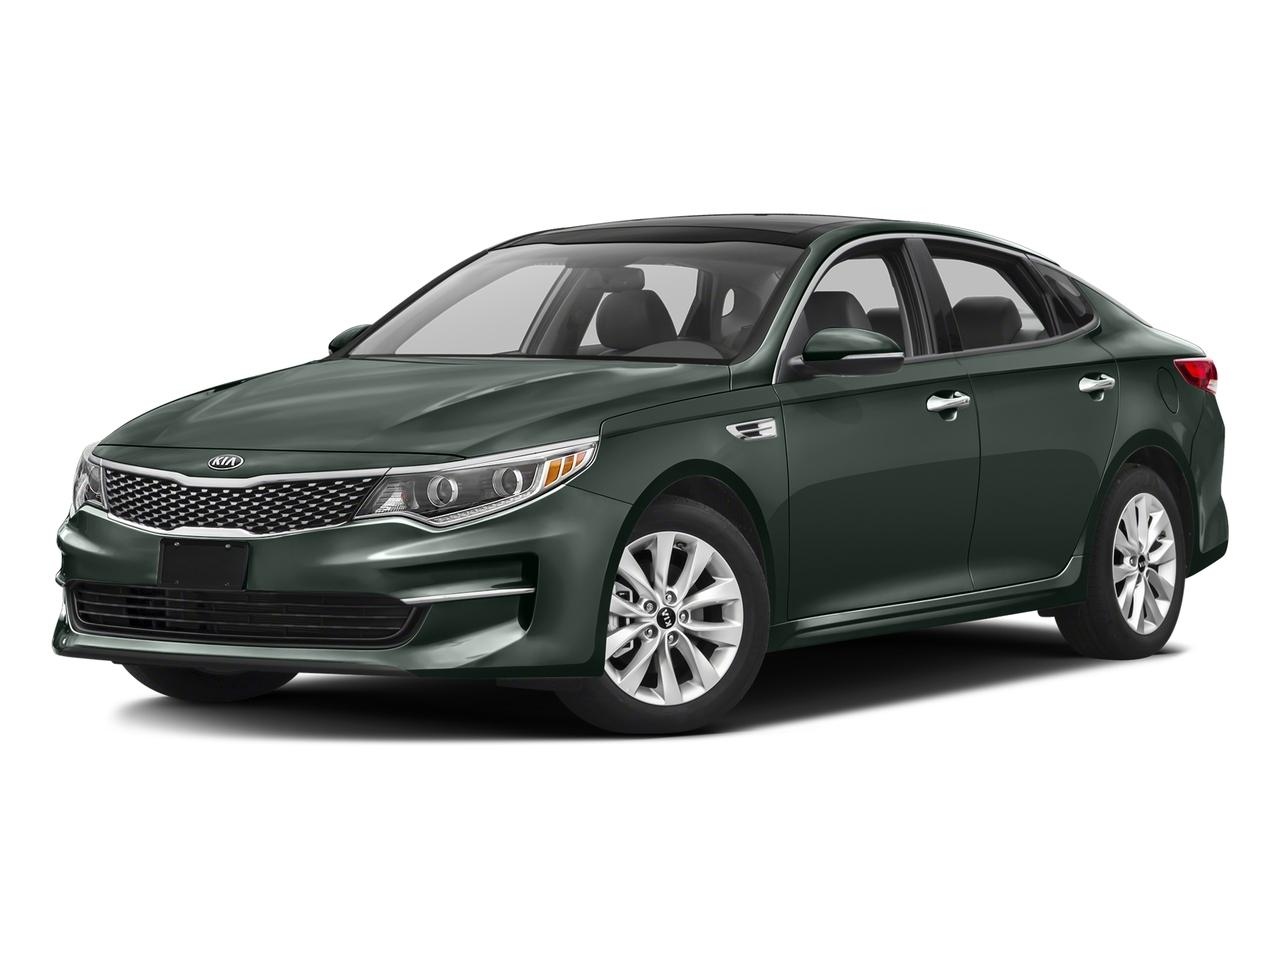 2016 Kia Optima Vehicle Photo in Ennis, TX 75119